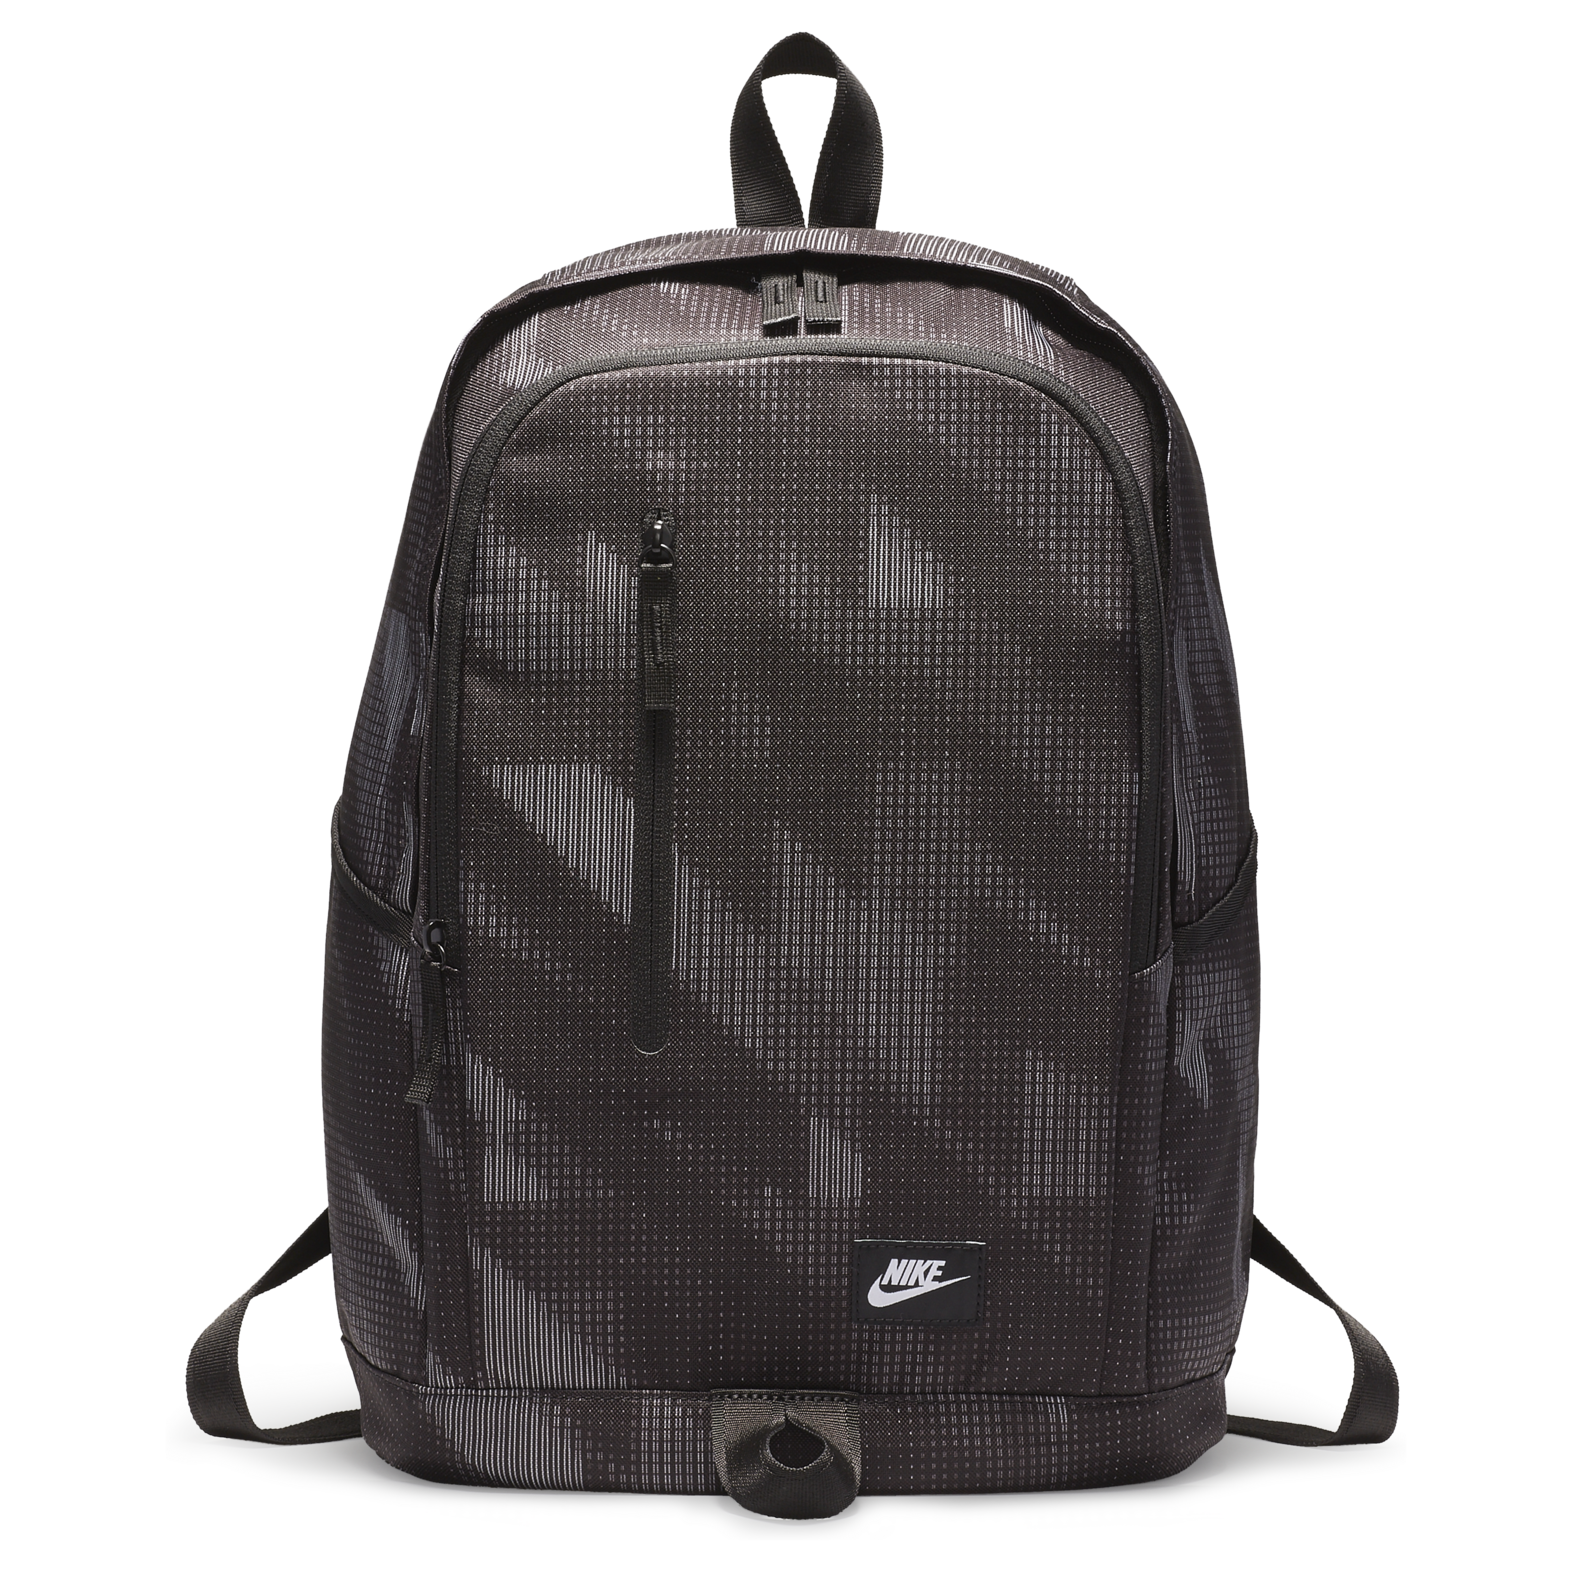 3f08e56cbf10 NIKE ALL ACCESS SOLEDAY BACK PACK BAG - Poobie Naidoos